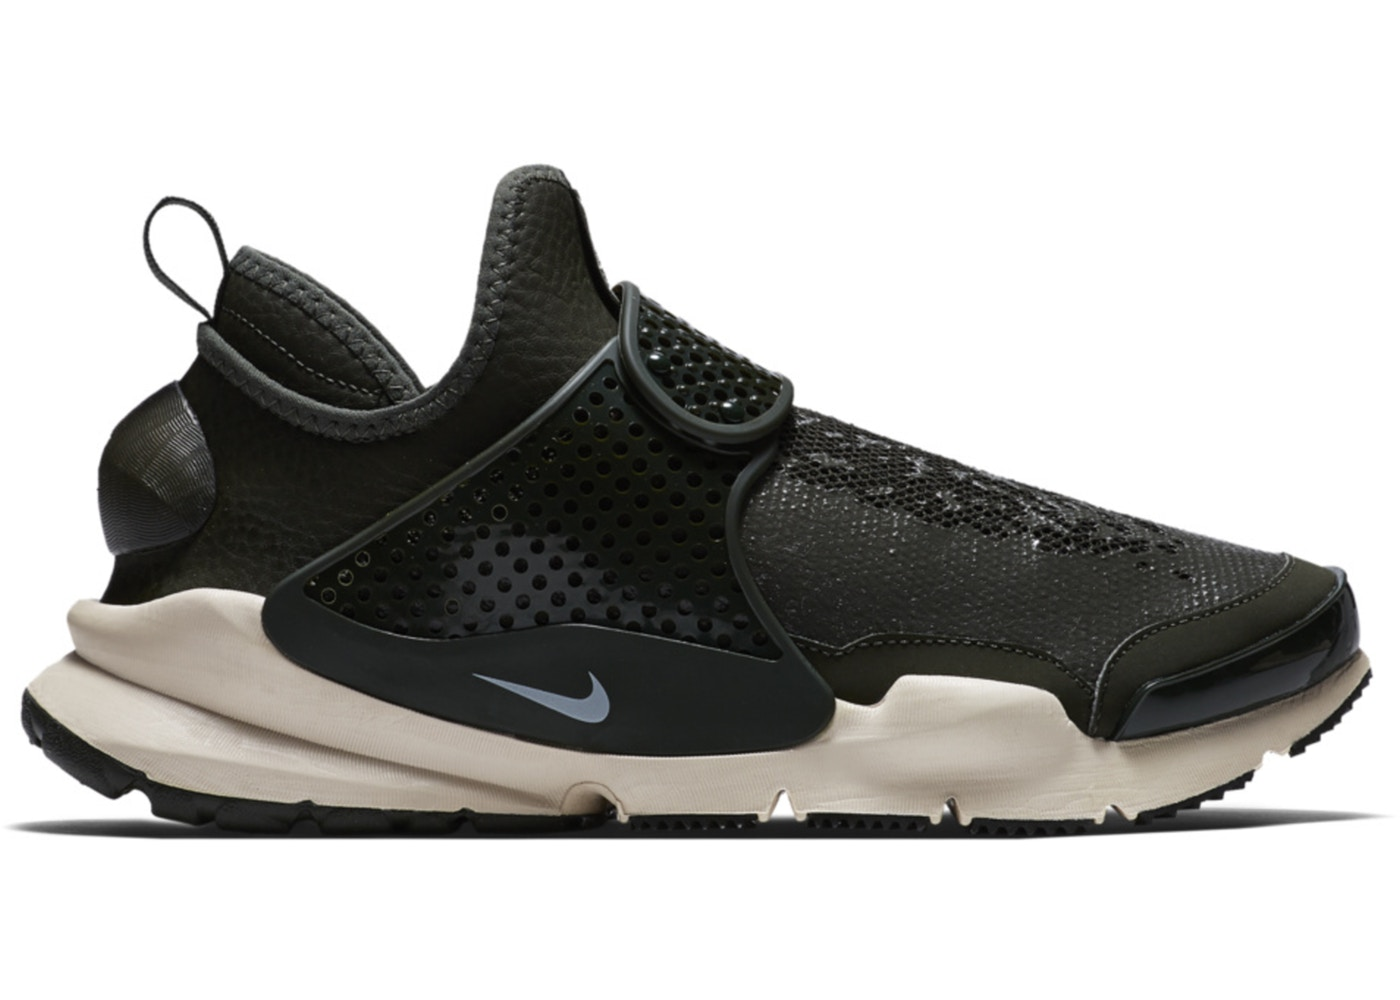 ナイキ NIKE ダート ミッド スニーカー 【 SOCK DART MID STONE ISLAND SEQUOIA LIGHT OREWOOD BROWN 】 メンズ